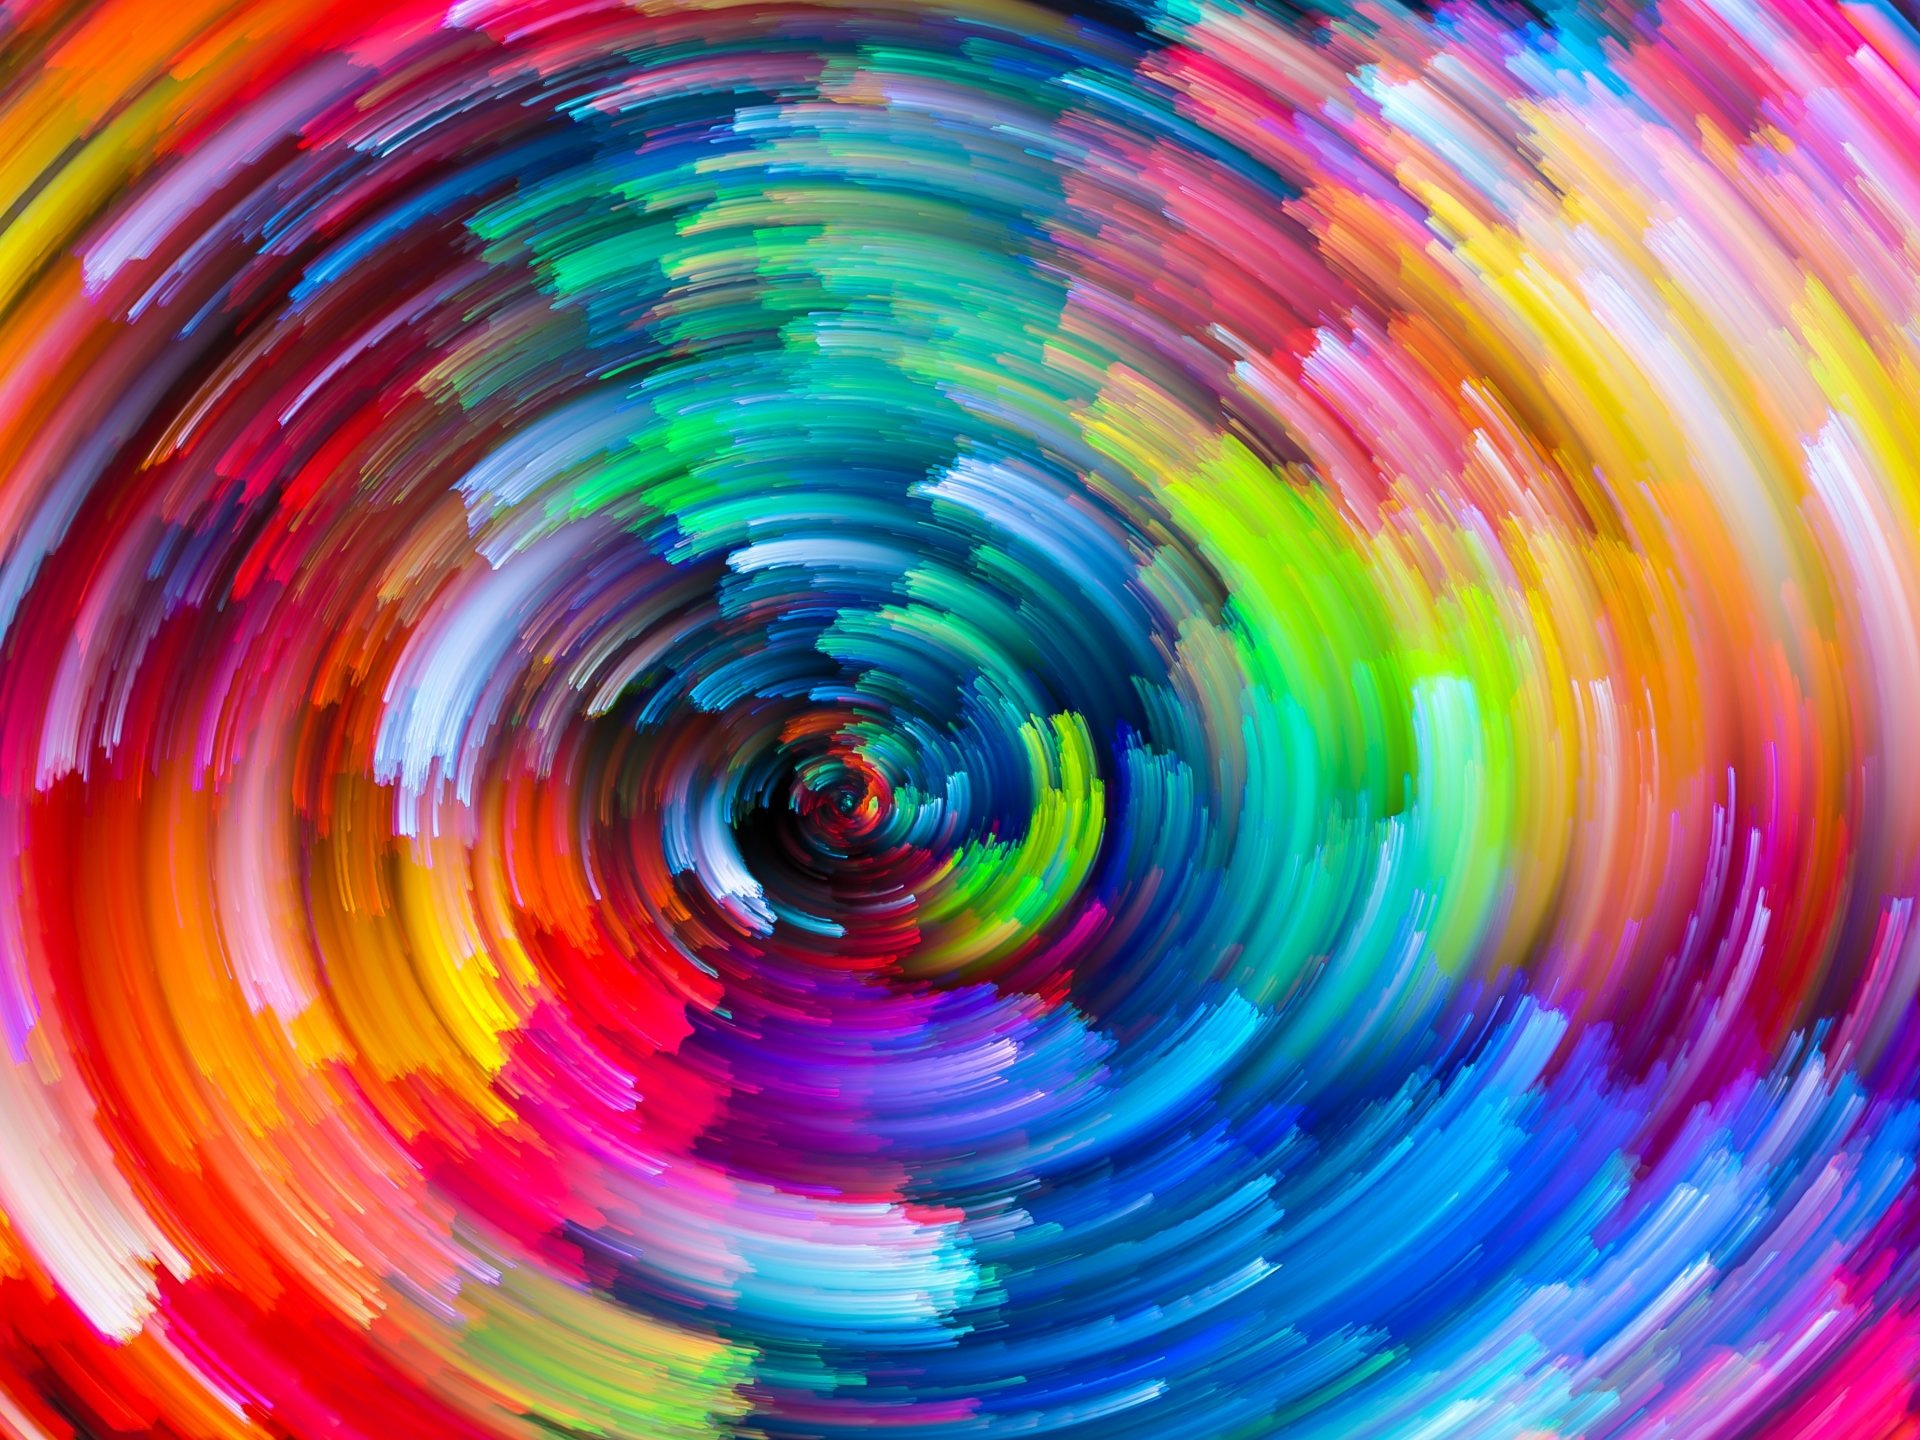 Abstract - Colors  Artistic Rainbow Colorful Vortex Wallpaper